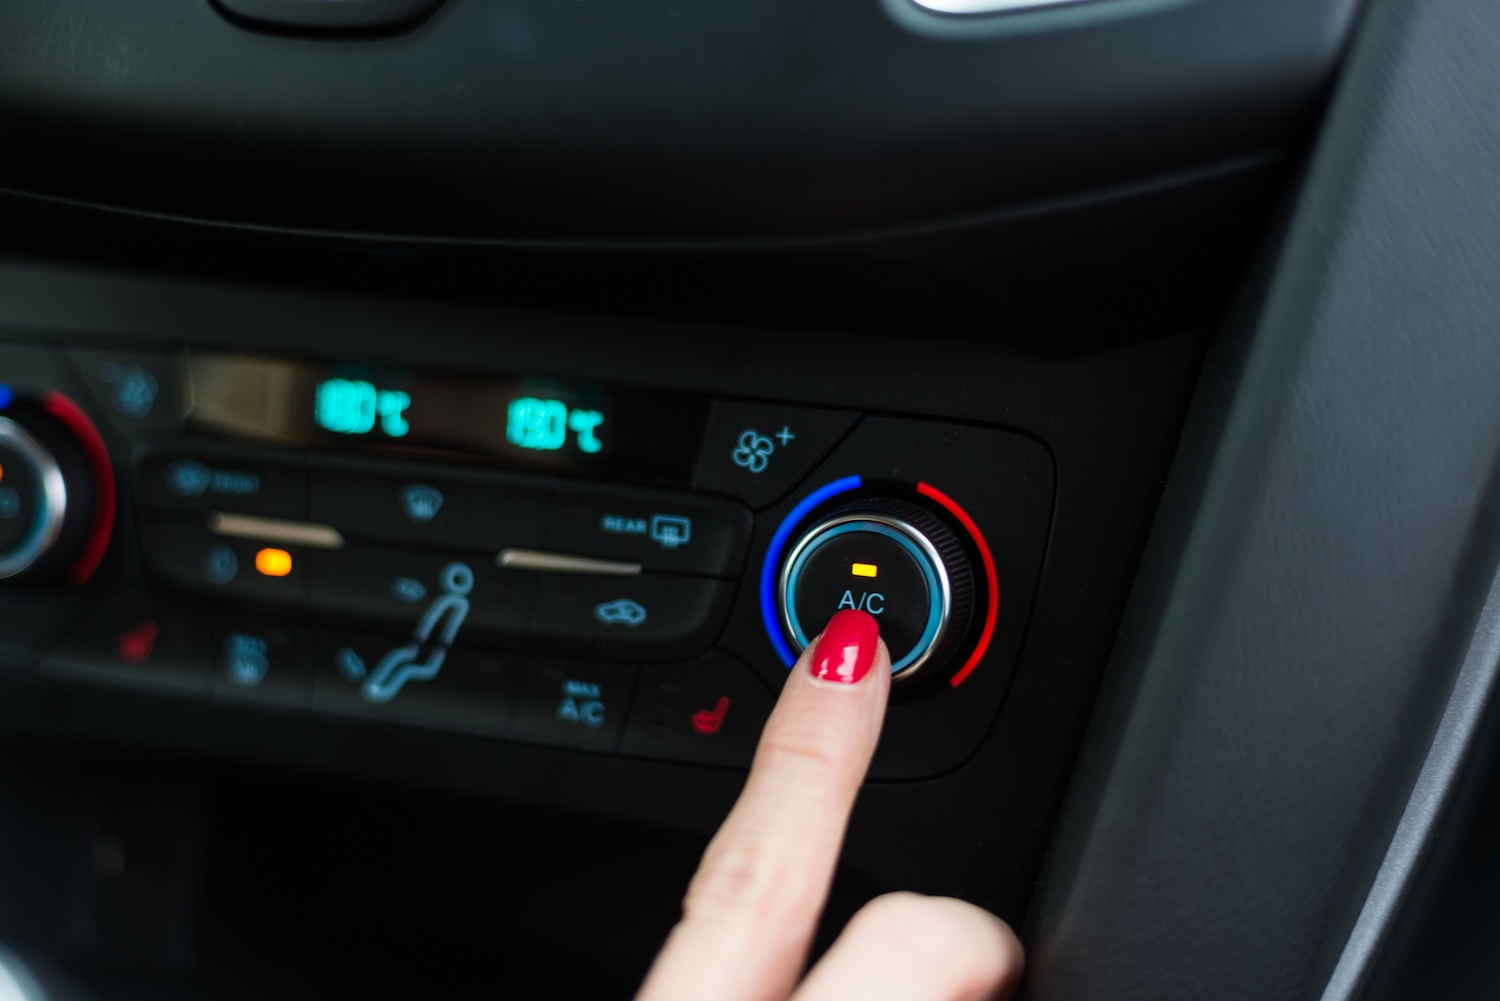 Don't Get Stuck Without A/C in Your Car This Summer